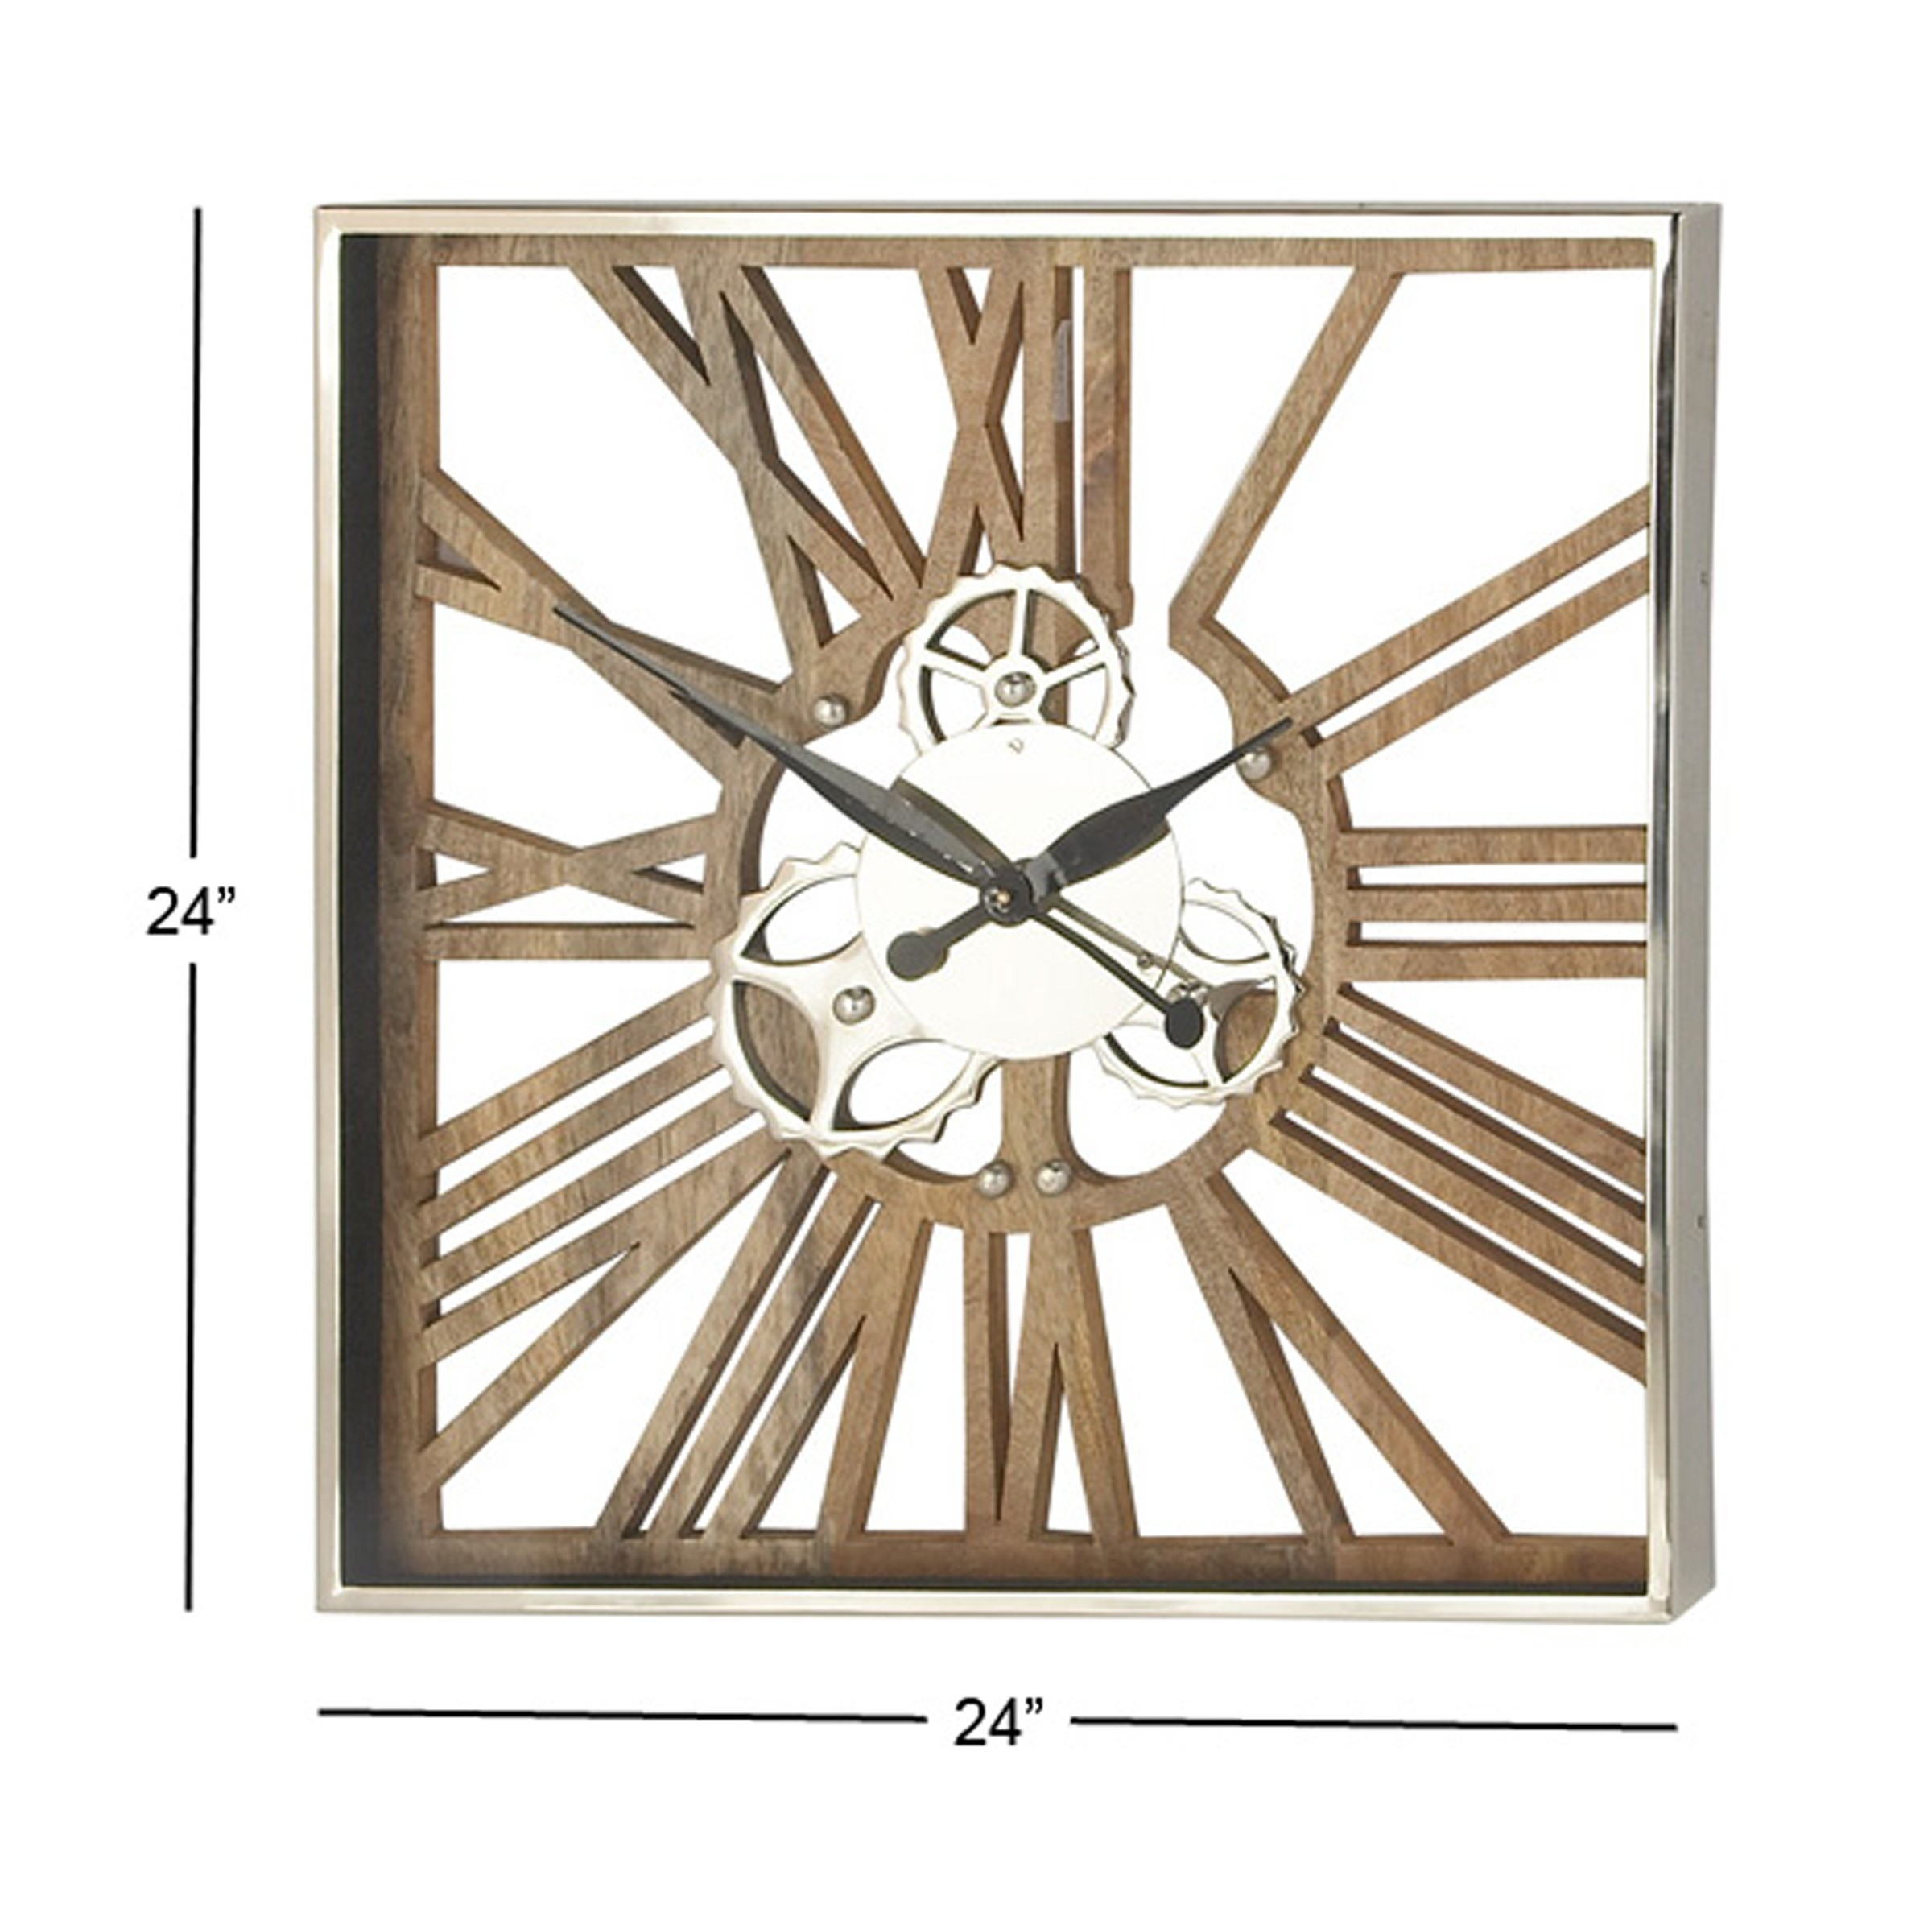 Decmode Industrial 24 X 24 Inch Square Wood, Aluminum And Stainless Steel  Gear Wall Clock  Wall Calendar Frame Plan - Item 49887